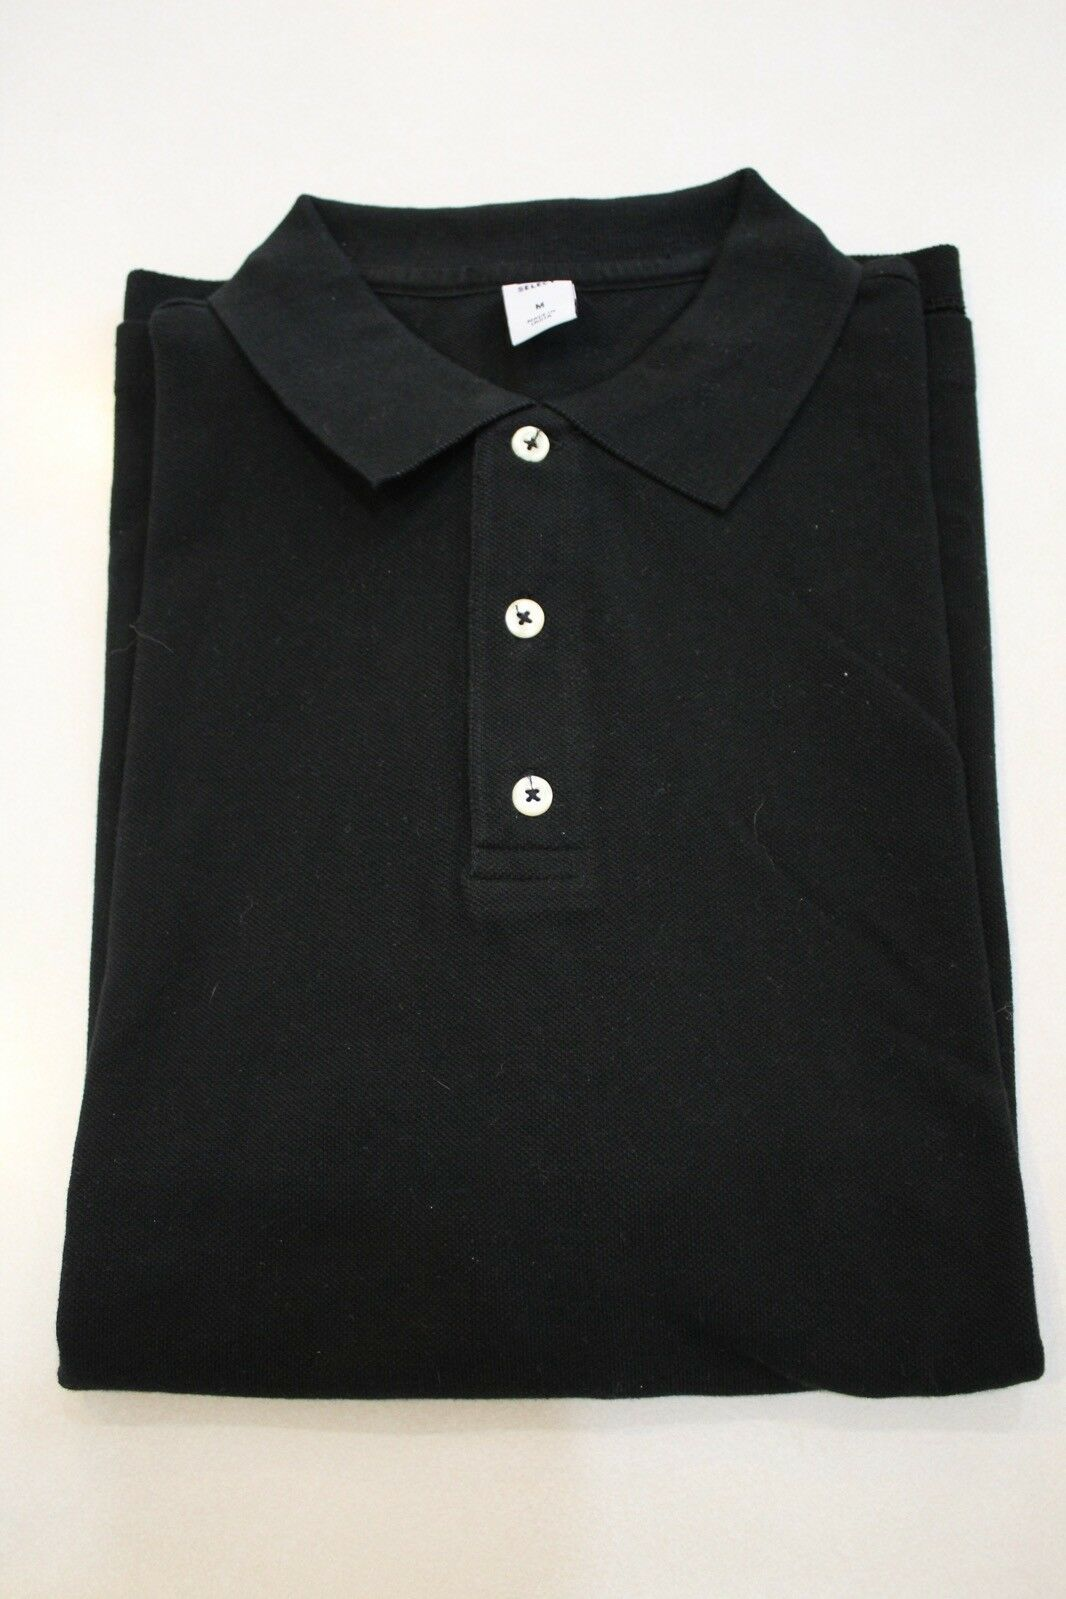 Gap Select Men's Short Sleeve Polo Shirt size M New image 5